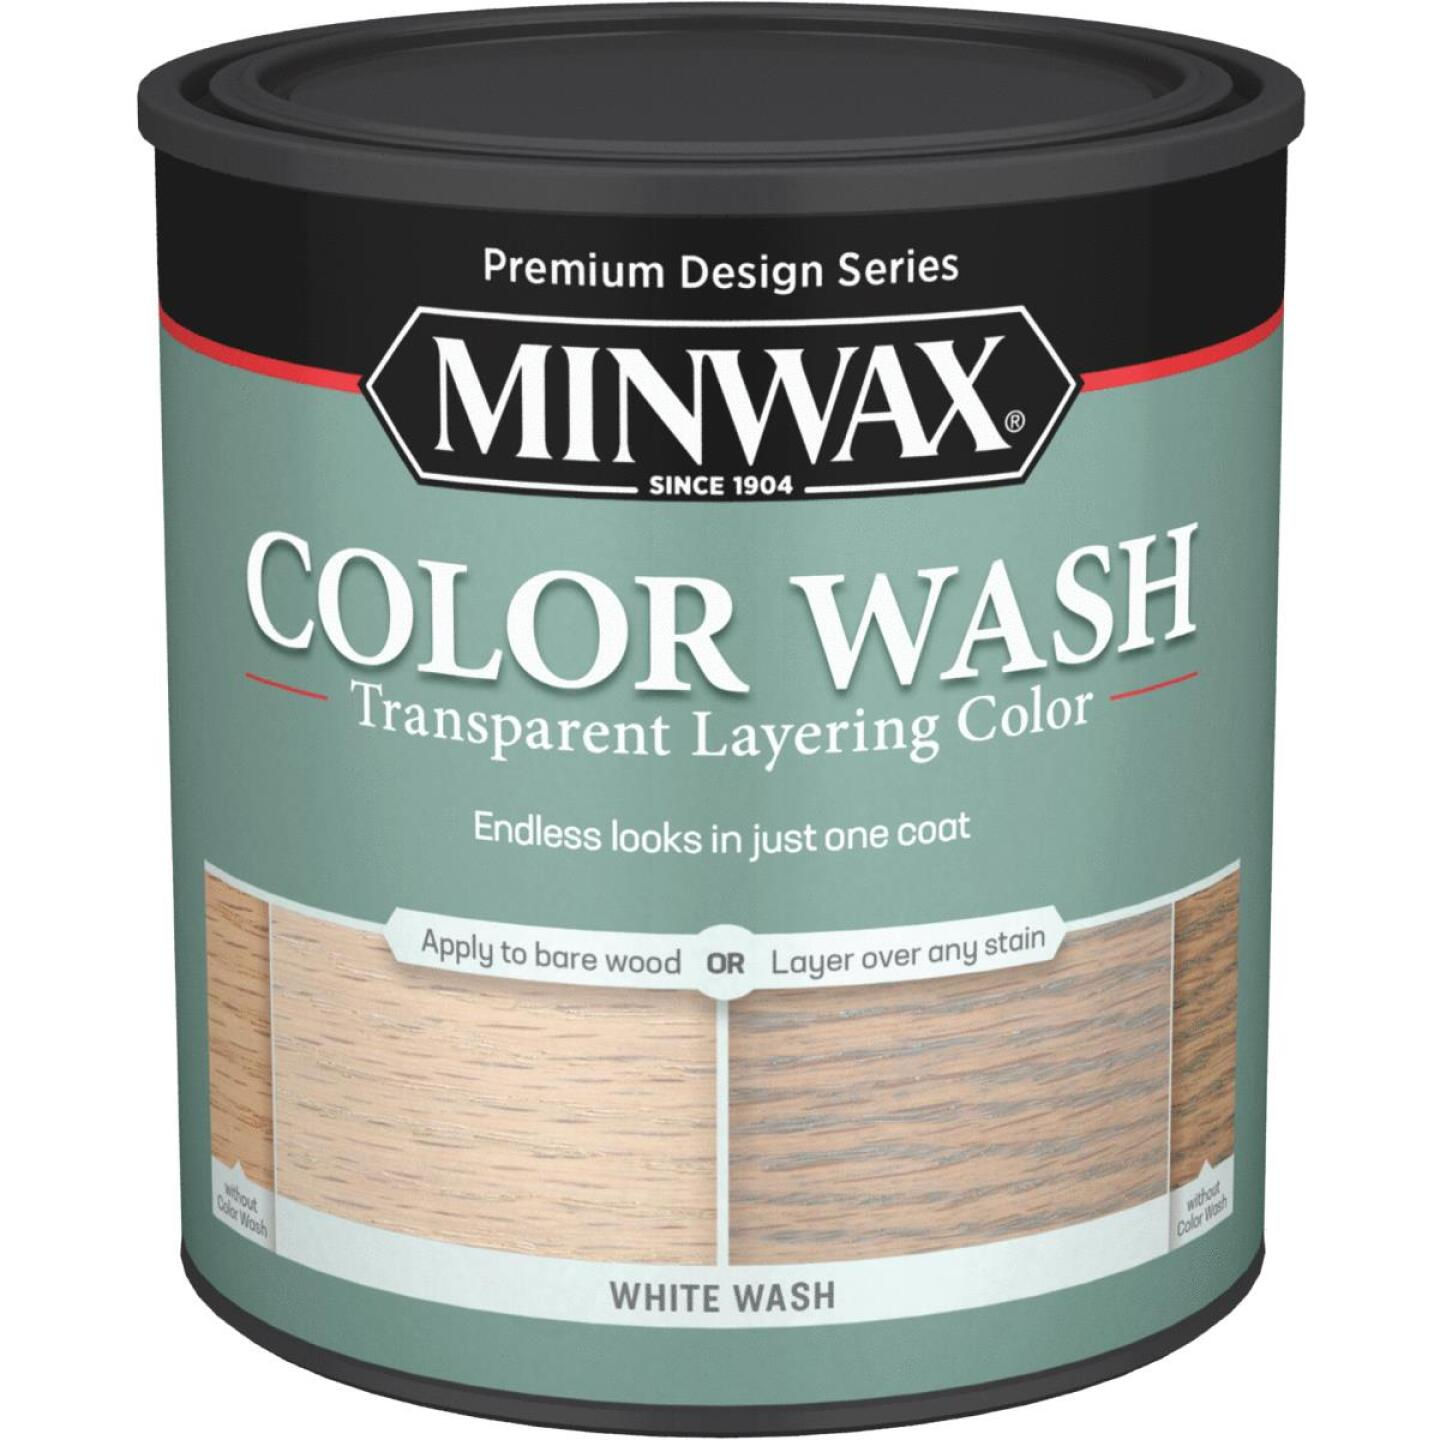 Minwax  Water-Based White Wash Wood Stain, White, 1 Qt. Image 1